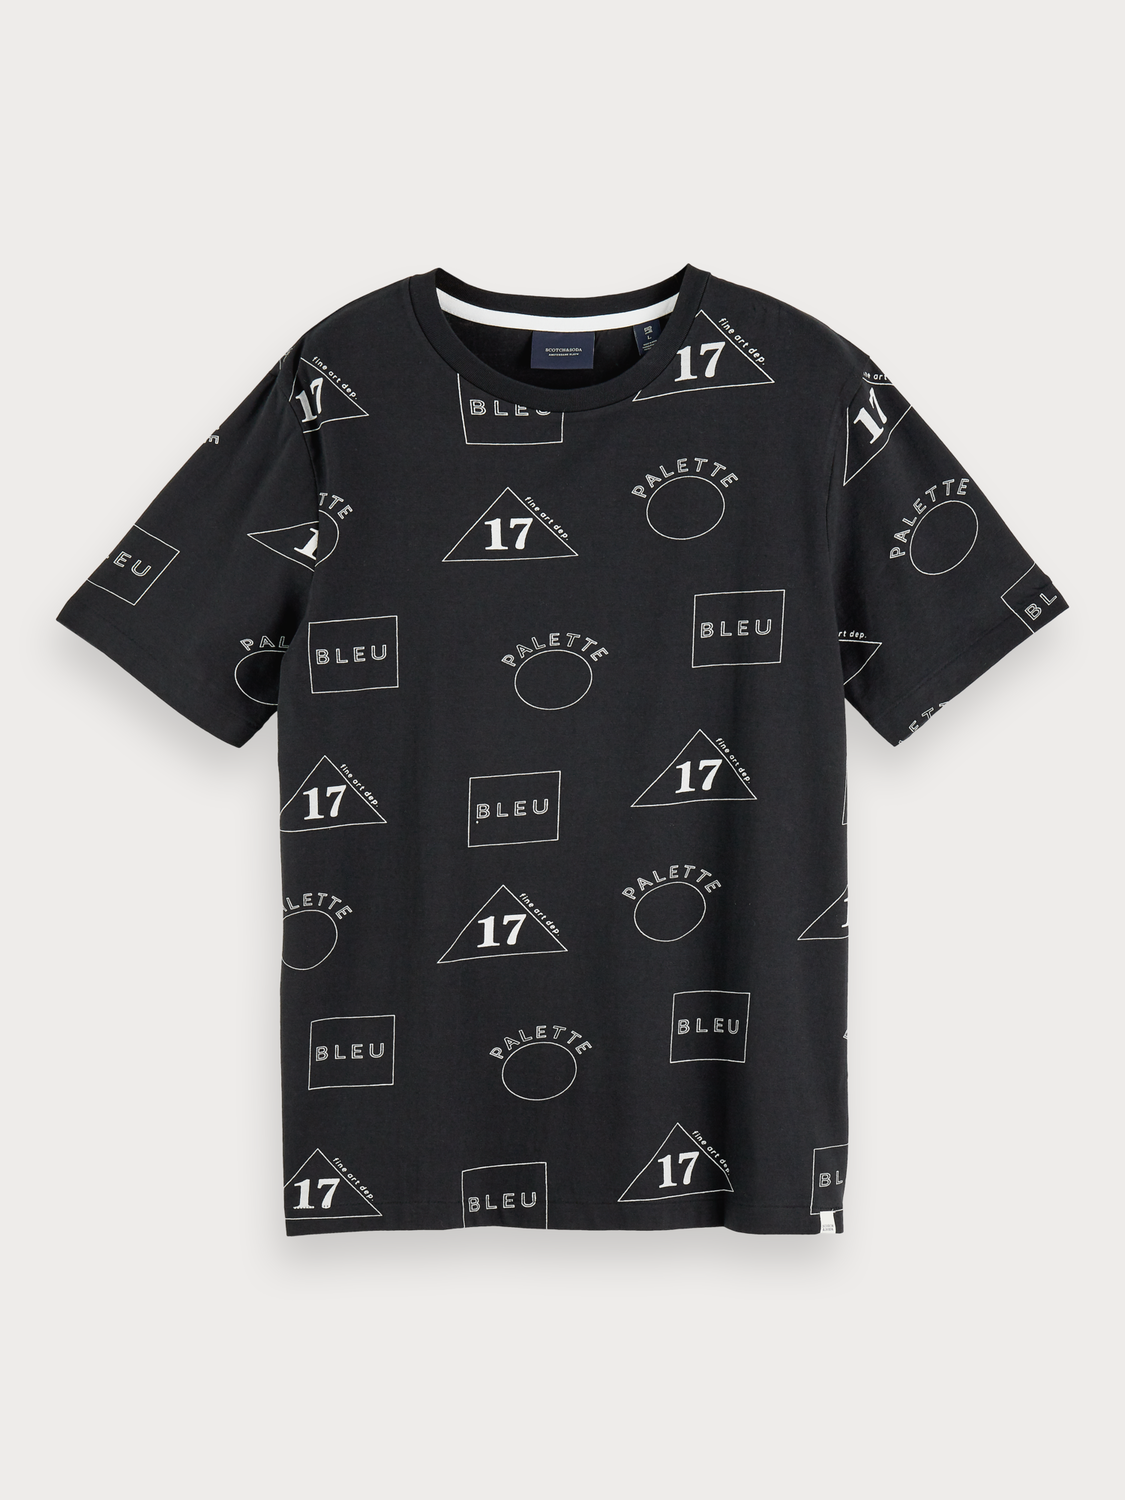 Uomo T-shirt con stampa all-over